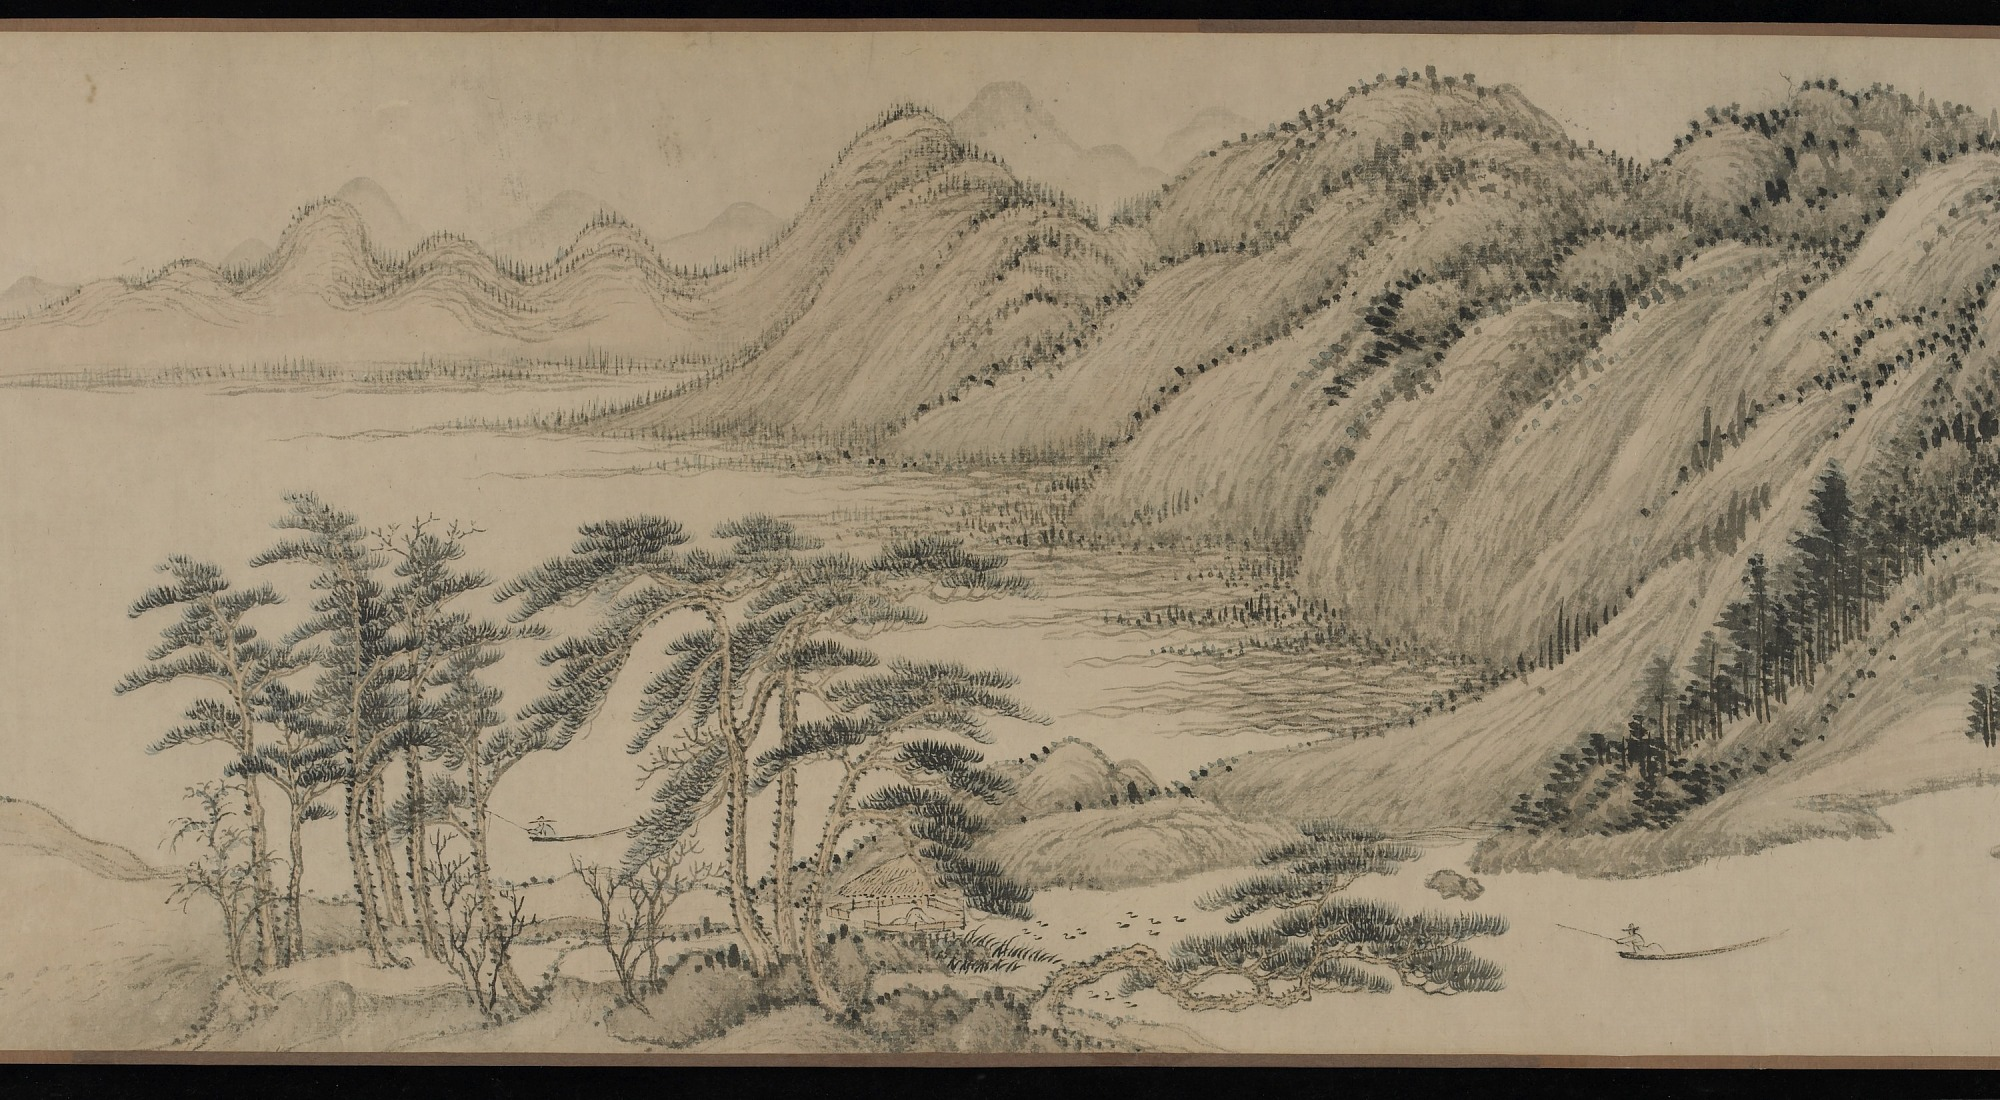 section 7: Dwelling in the Fuchun Mountains after Huang Gongwang